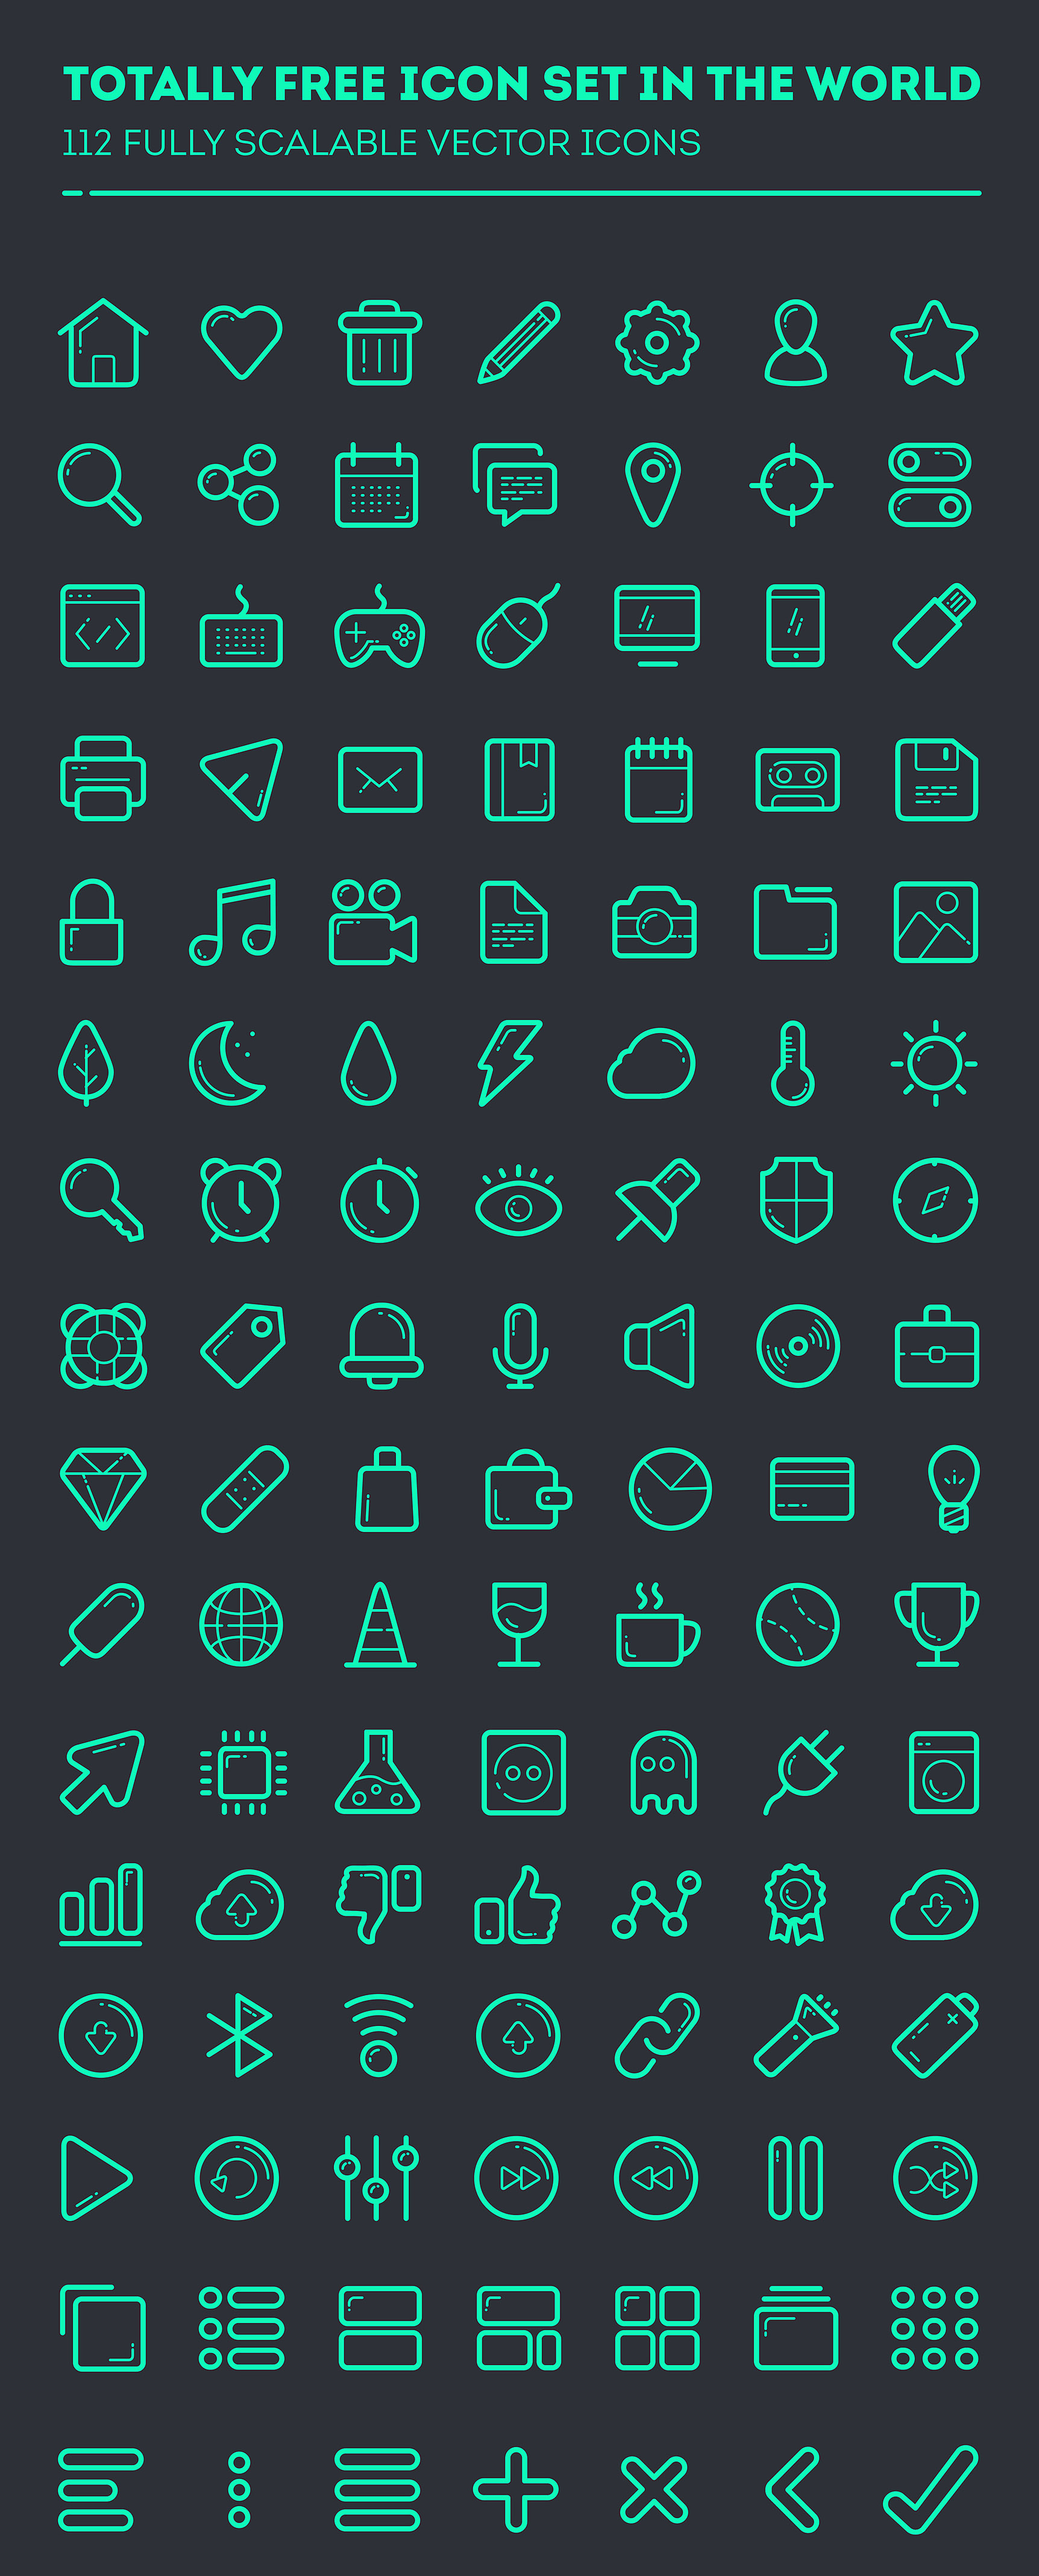 vector icon set 100 icons free download icons graphic